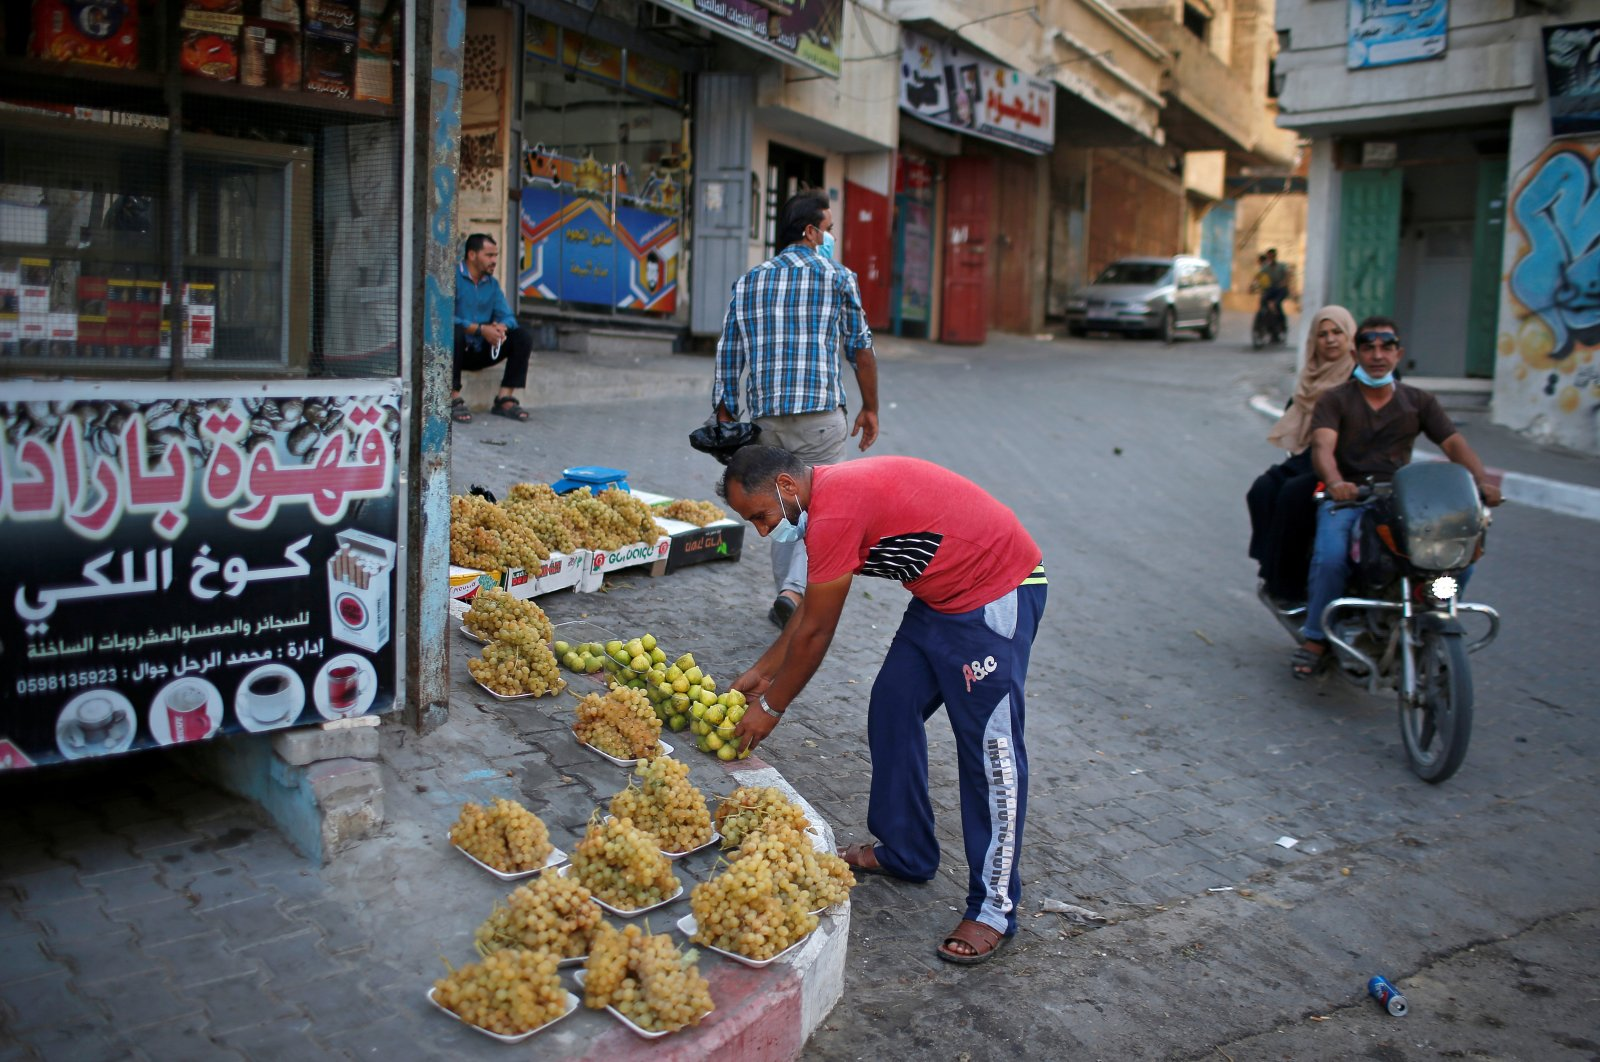 A Palestinian man sells figs and grapes on a sidewalk amid the coronavirus disease (COVID-19) outbreak, in the northern Gaza Strip Sept. 22, 2020. (Reuters Photo)